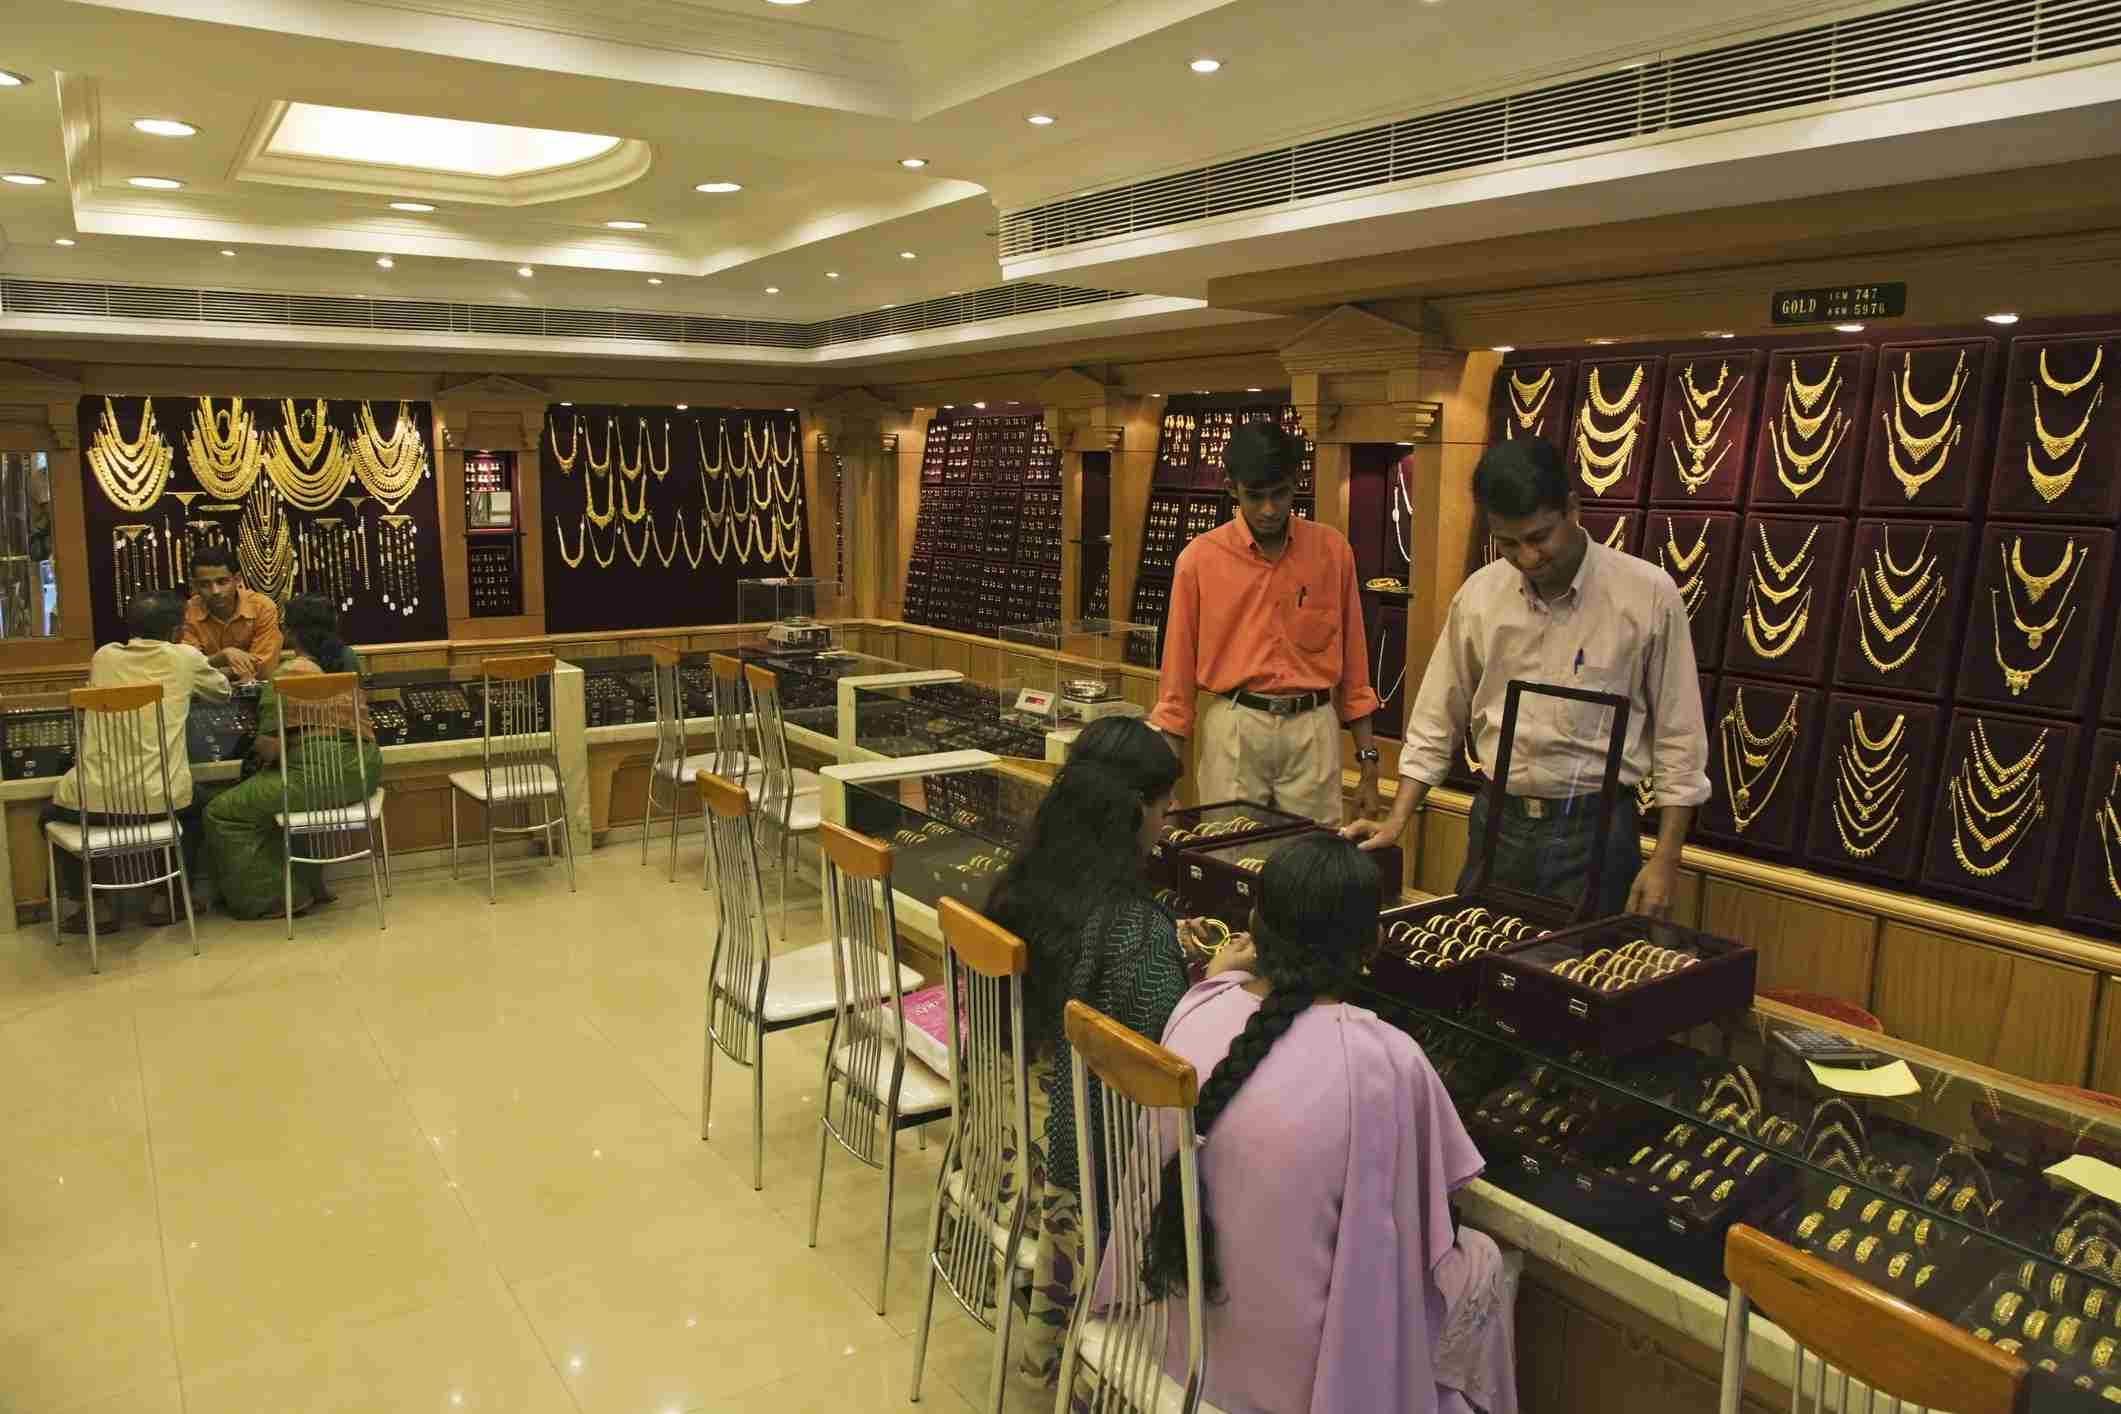 Gold shop in India.